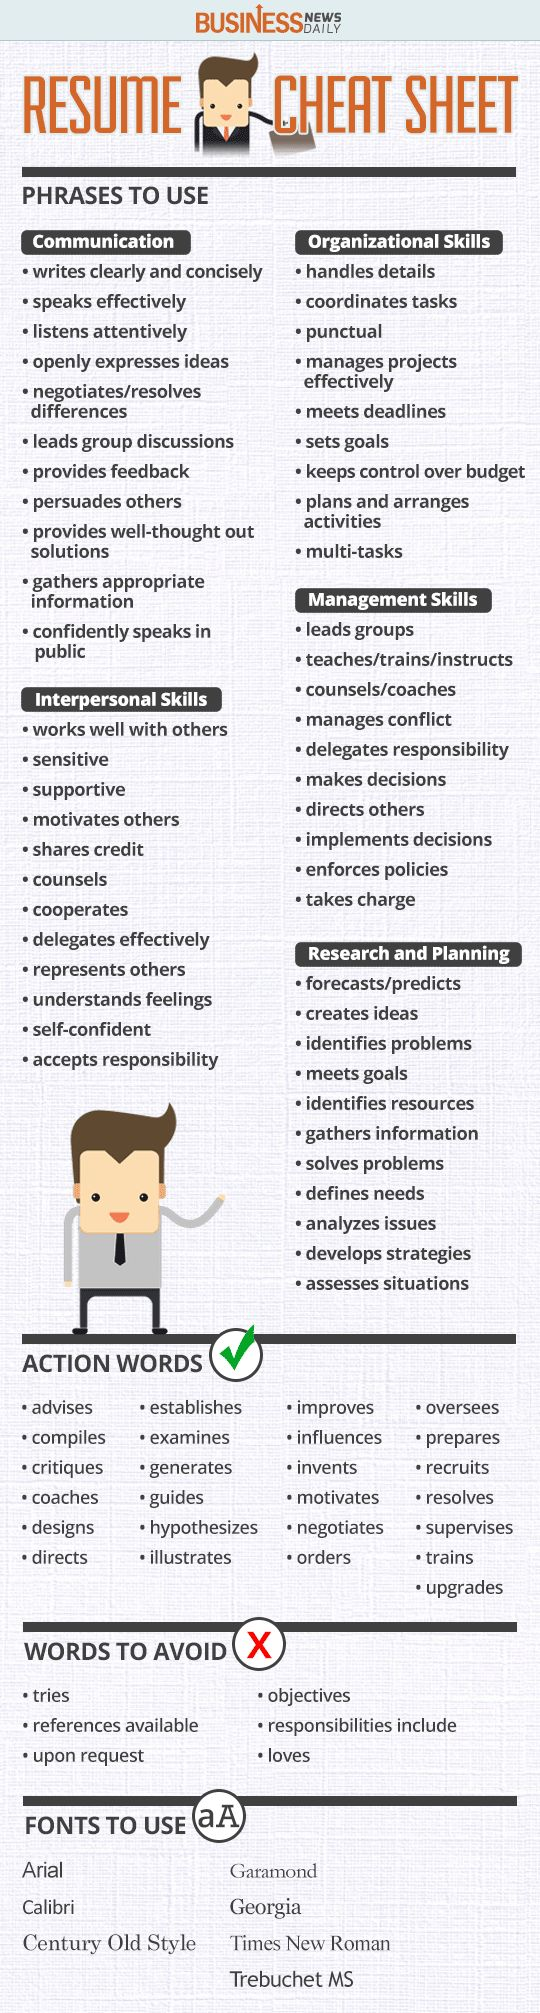 Opposenewapstandardsus  Mesmerizing  Ideas About Resume On Pinterest  Cv Format Resume  With Goodlooking Resume Cheat Sheet Infographic Andrews Almost Done With A Complete Unit On Employment Which With Comely Sample Resume Templates Free Also Resume Rewrite In Addition Junior Financial Analyst Resume And Resume For Forklift Operator As Well As How To Draft A Resume Additionally Customer Service Skills List Resume From Pinterestcom With Opposenewapstandardsus  Goodlooking  Ideas About Resume On Pinterest  Cv Format Resume  With Comely Resume Cheat Sheet Infographic Andrews Almost Done With A Complete Unit On Employment Which And Mesmerizing Sample Resume Templates Free Also Resume Rewrite In Addition Junior Financial Analyst Resume From Pinterestcom